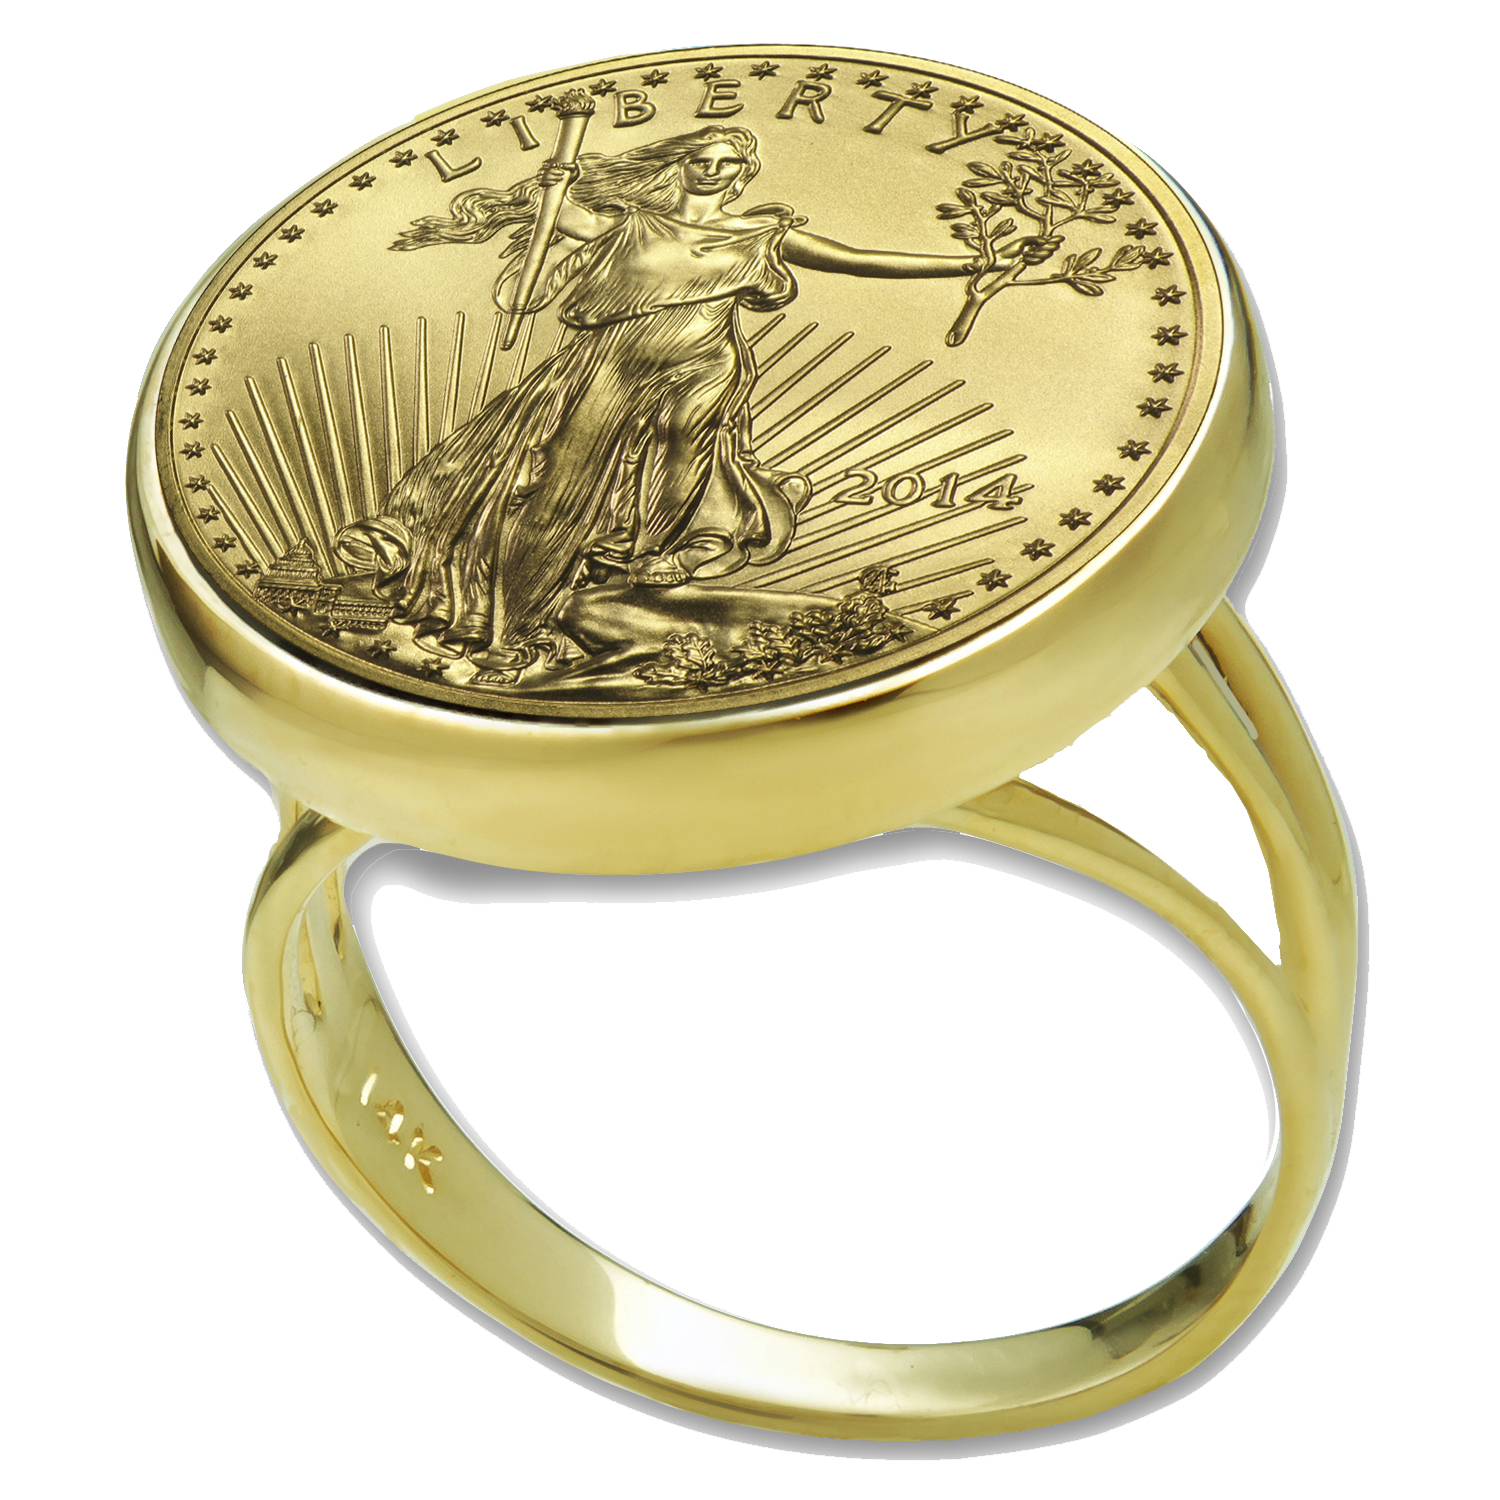 2014 1/10 oz Gold Eagle Ring (Polished-Prong)